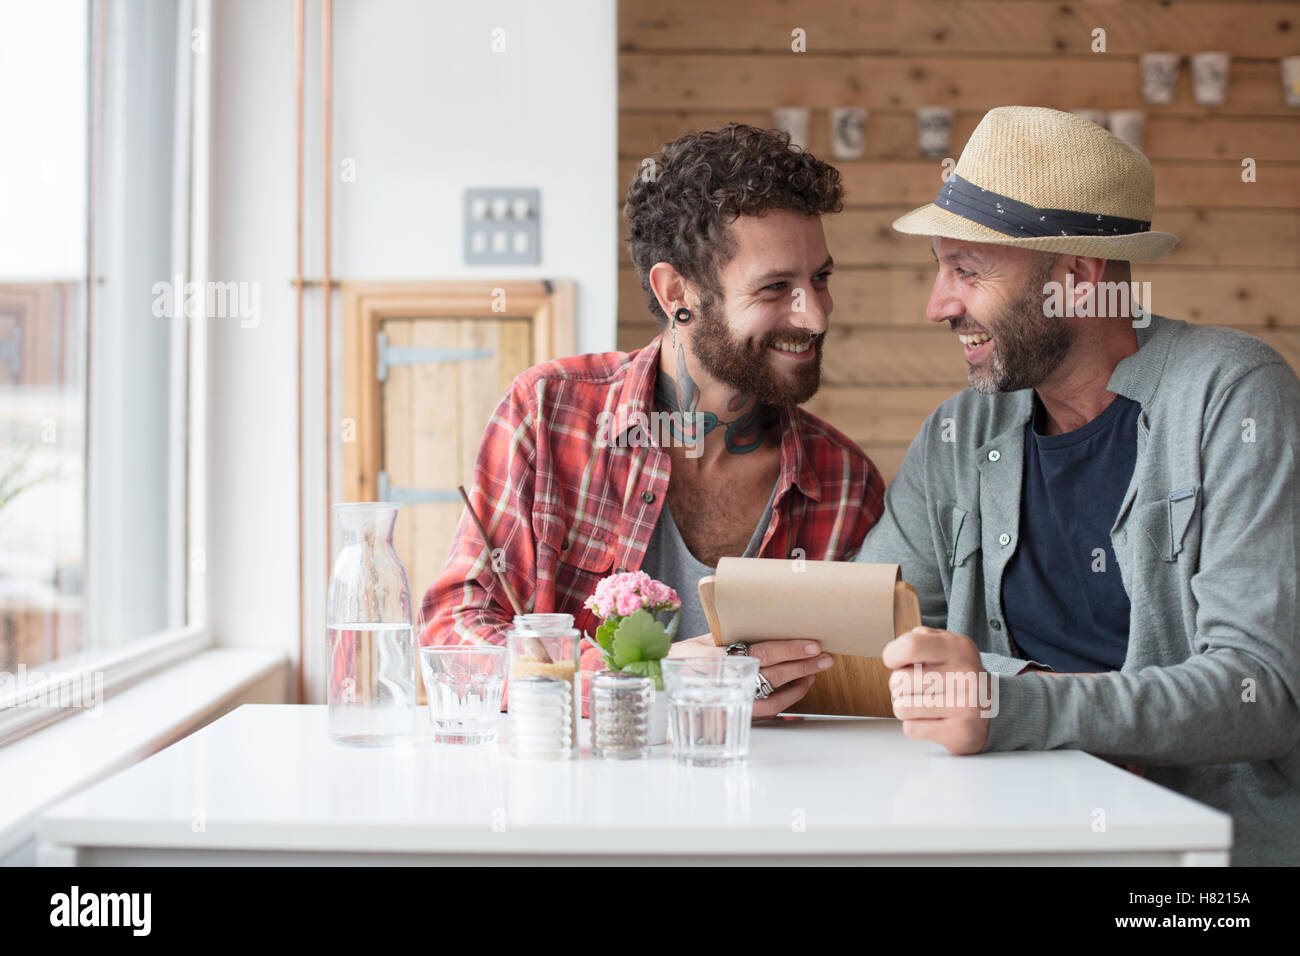 Gay couple sat viewing menu in cafe - Stock Image